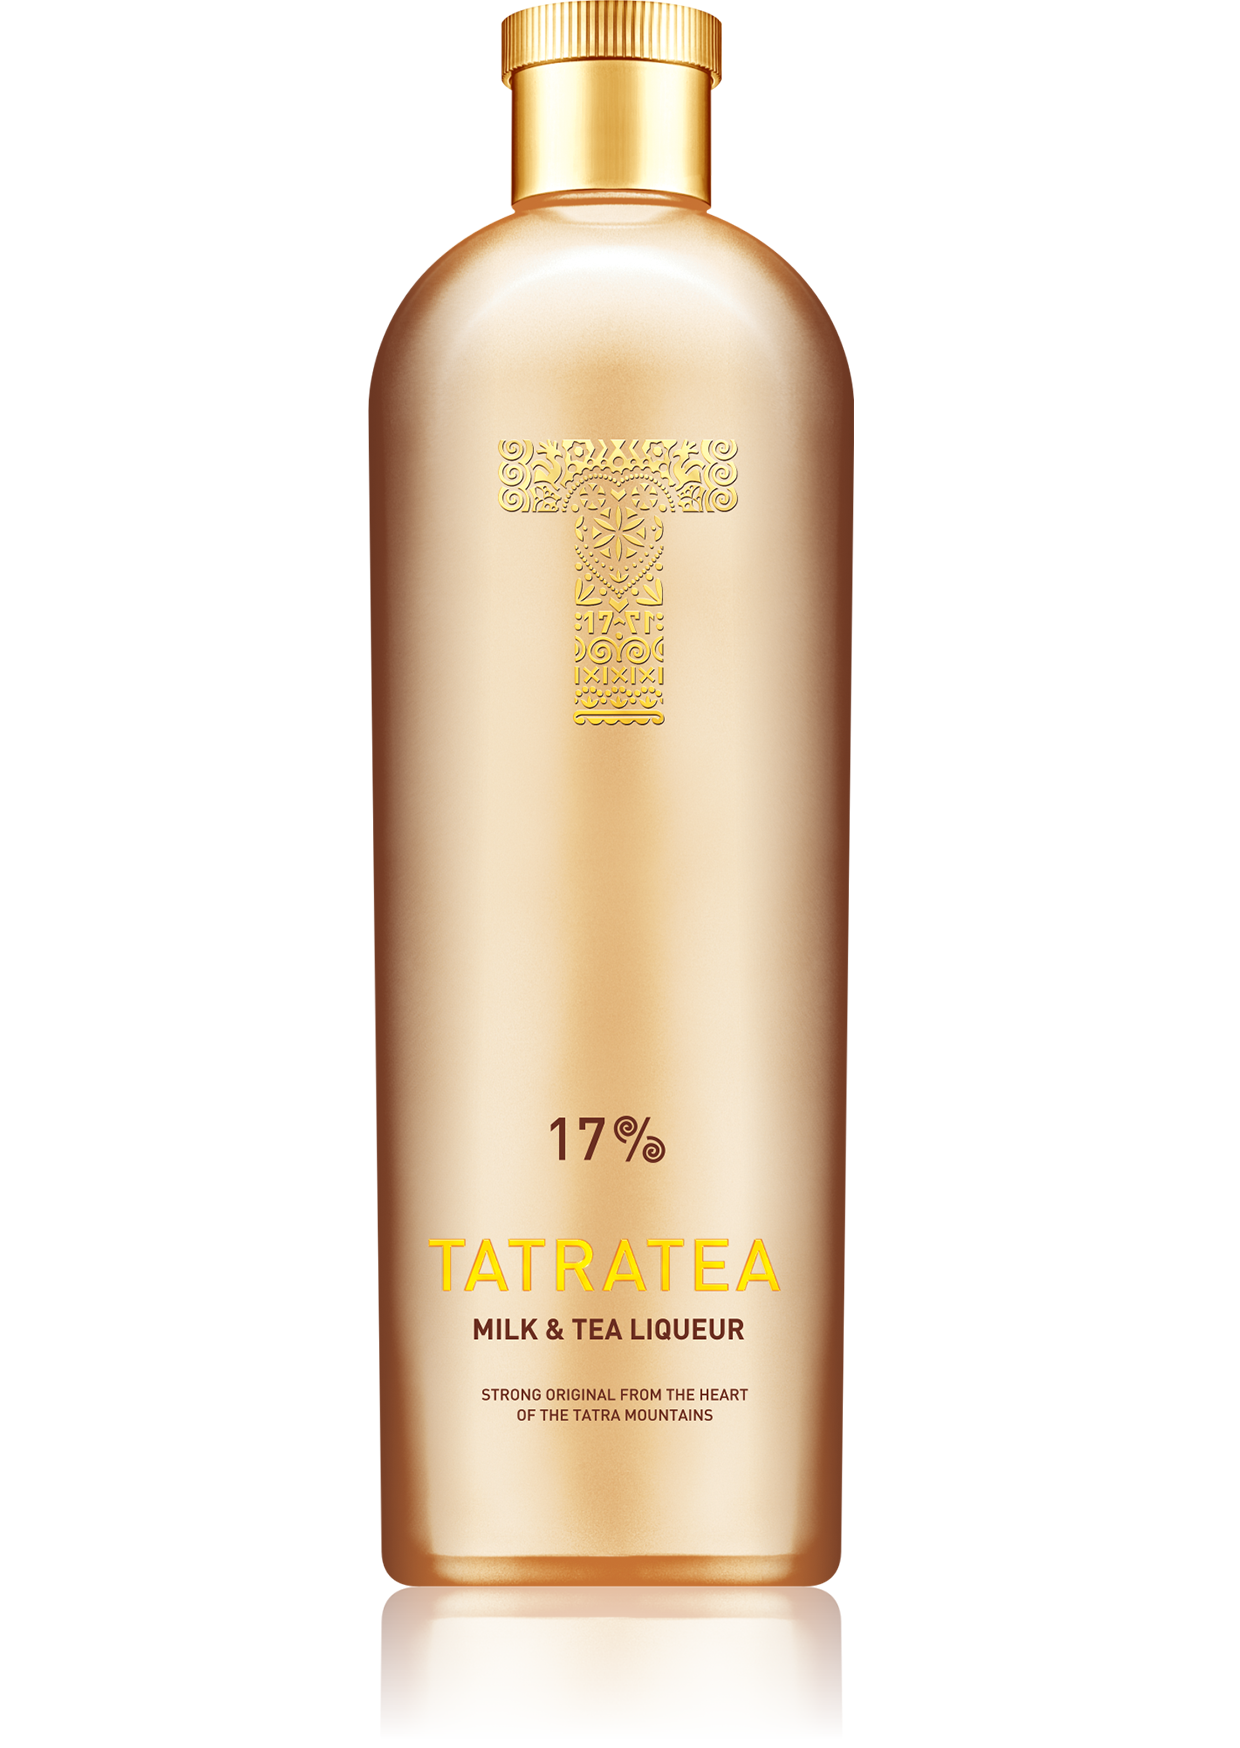 TATRATEA 17 % MILK & TEA